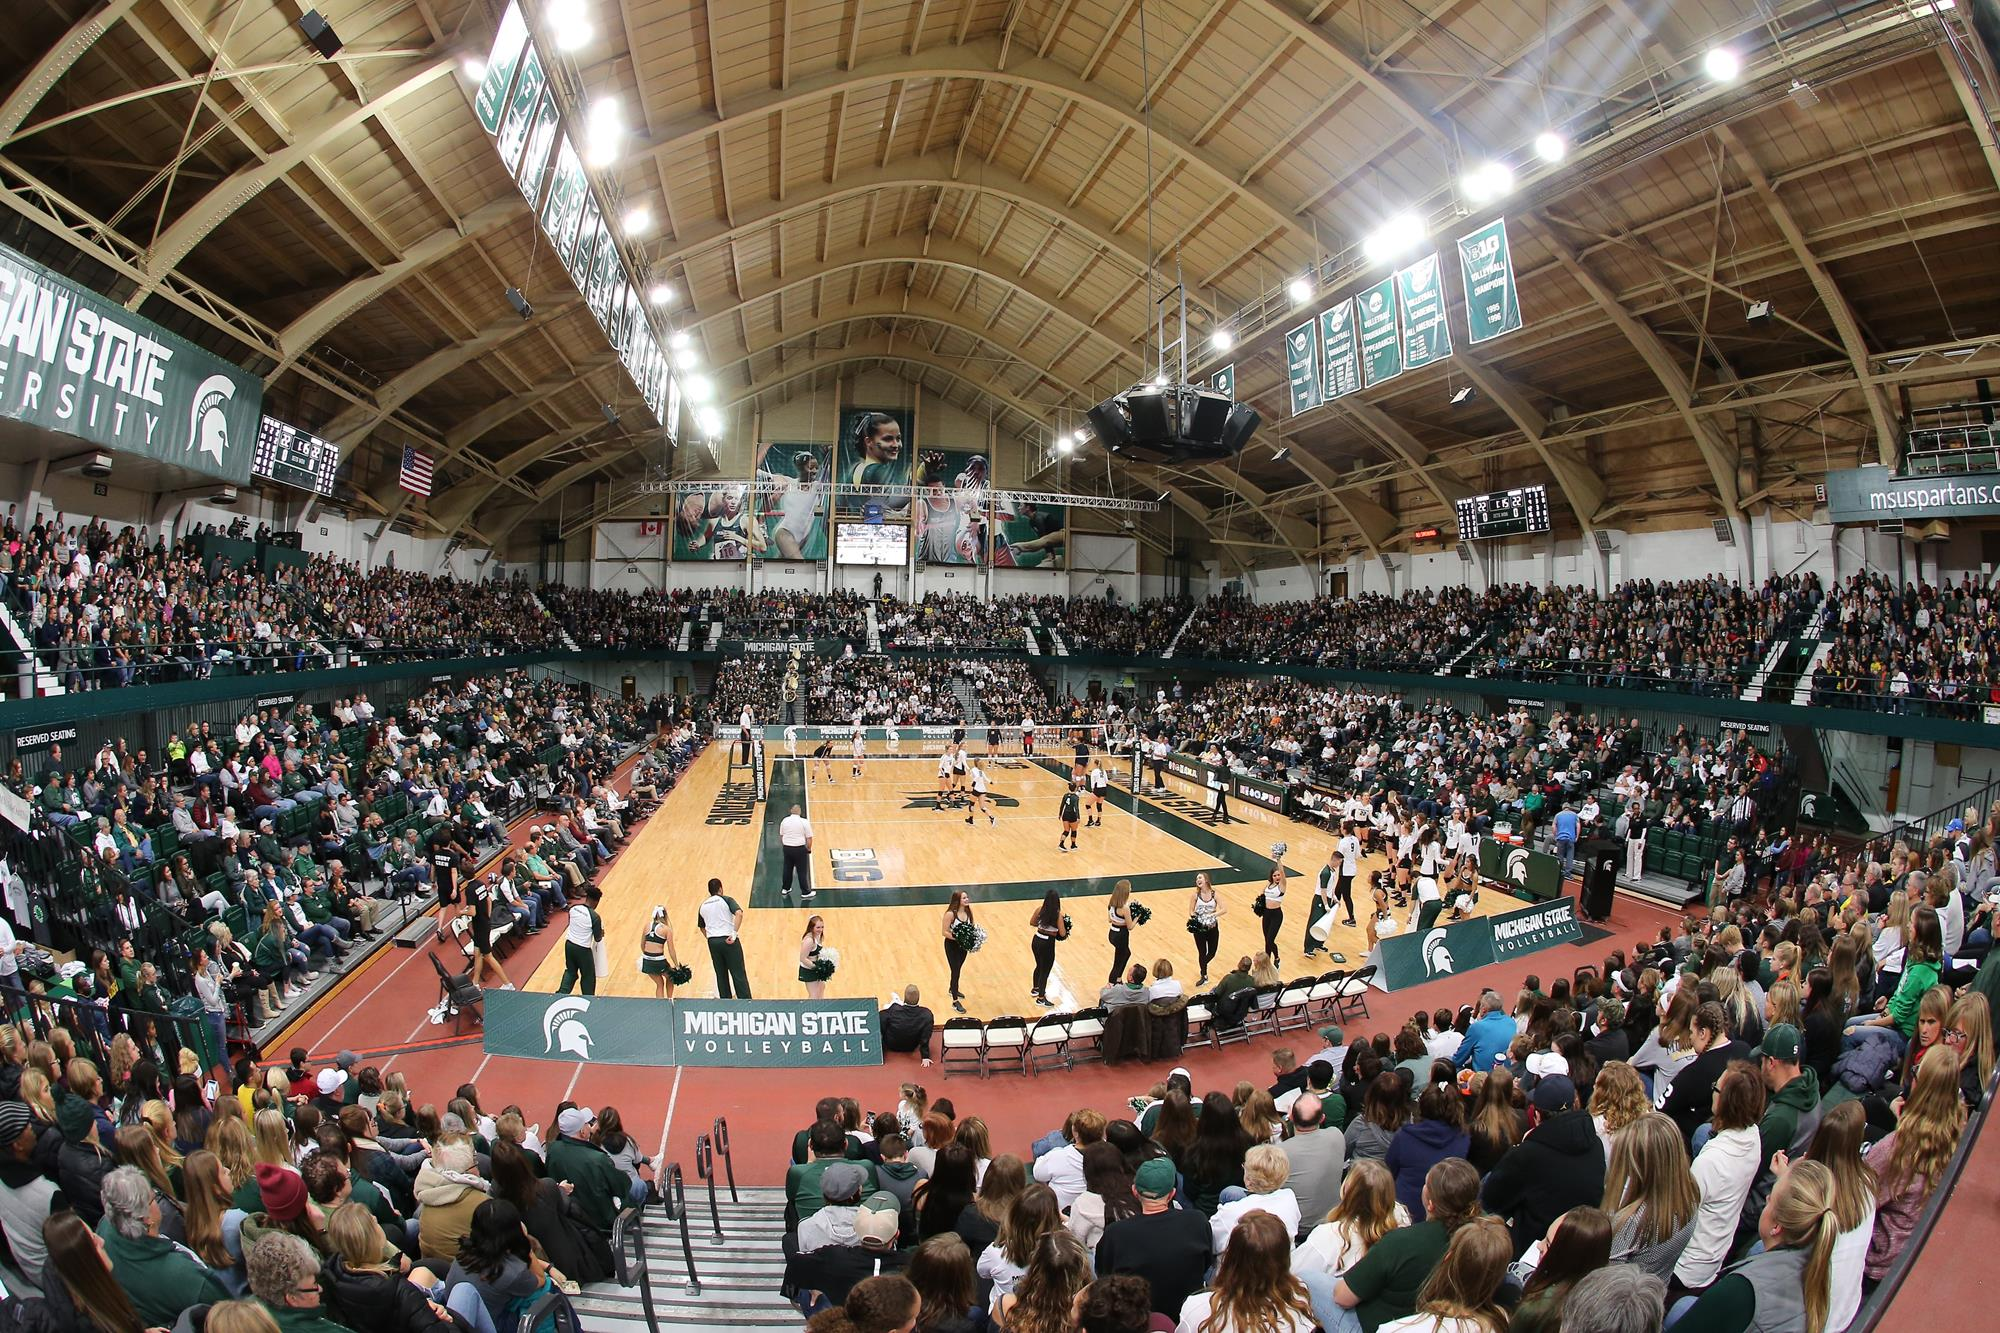 Registration Open For Summer 2019 Volleyball Camps Michigan State University Athletics